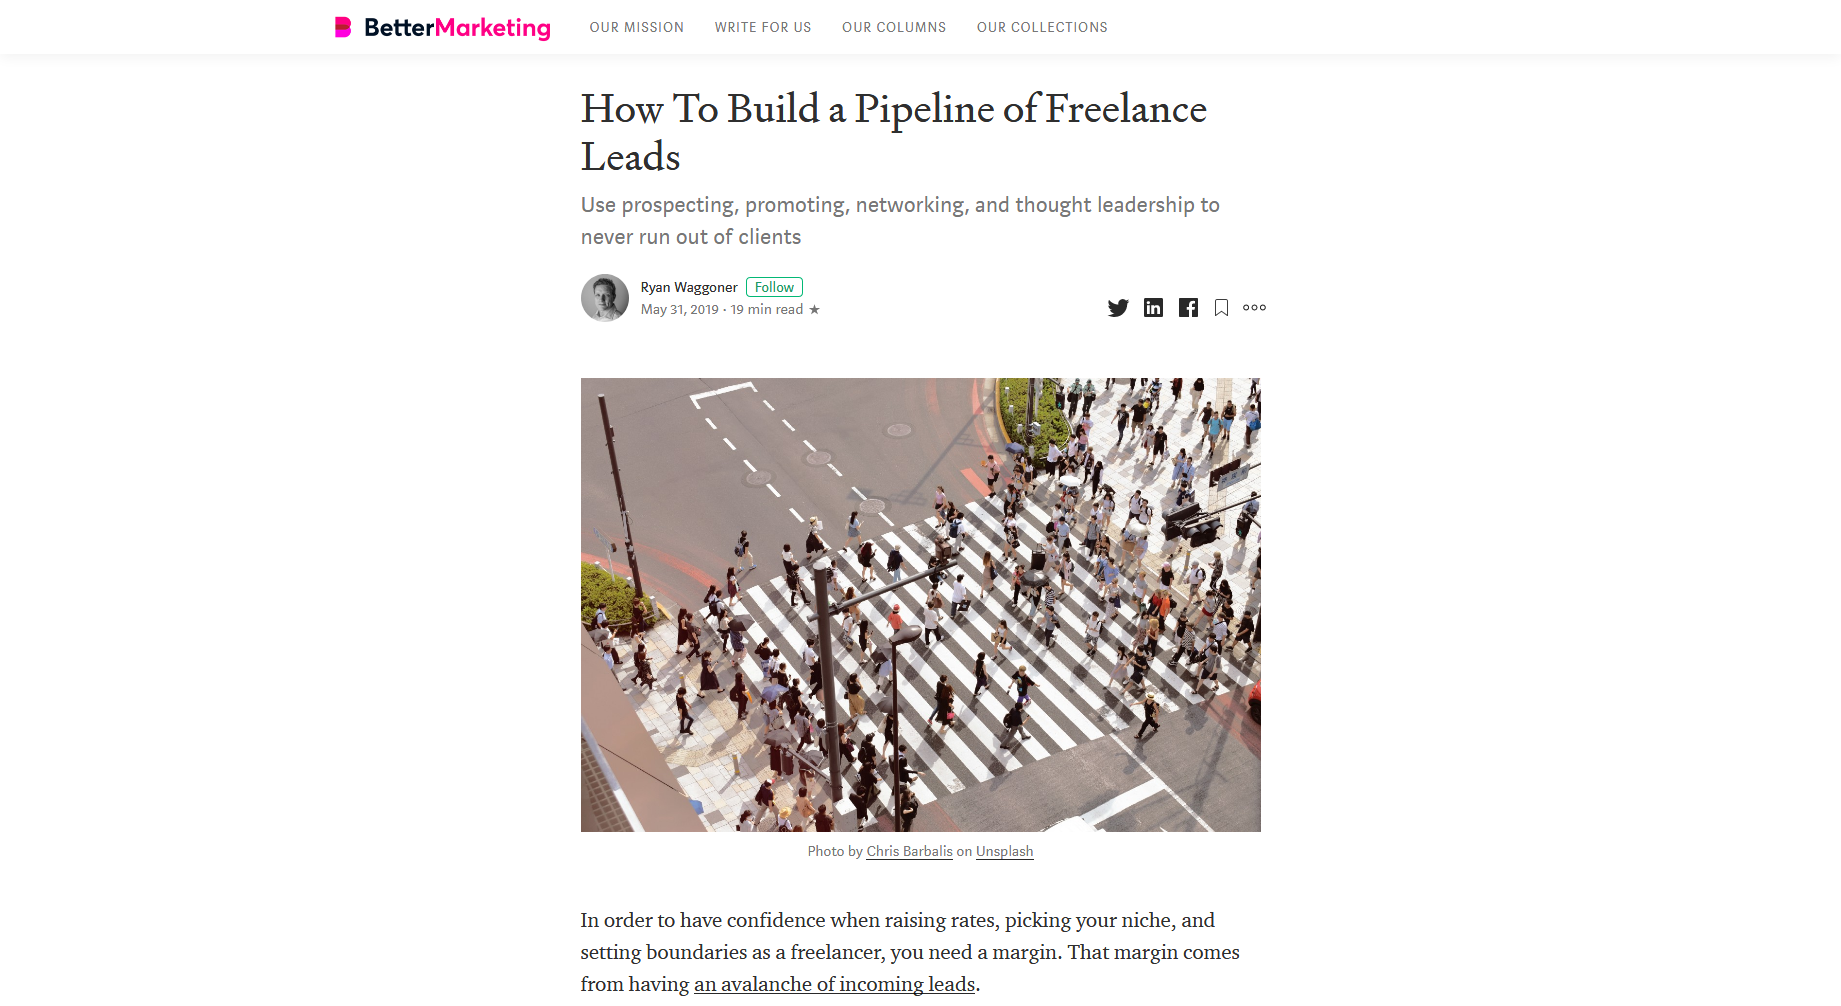 How to Build a Pipeline of Freelance Leads